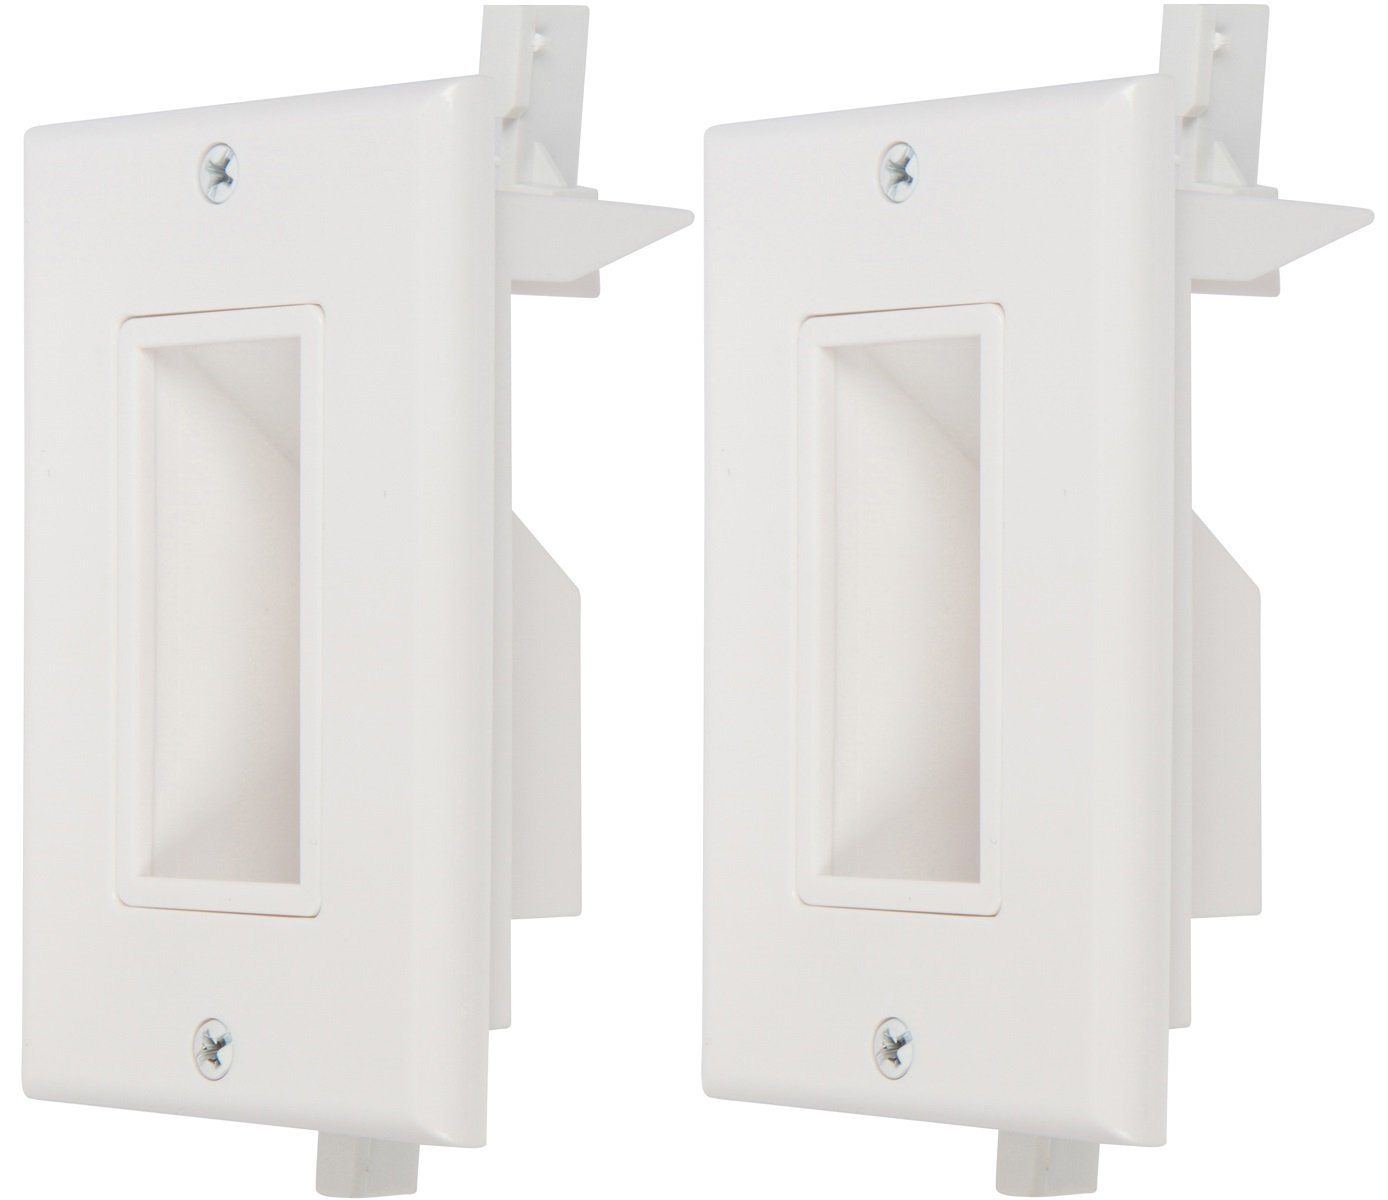 Buy Recessed Low Voltage Cable Wall Plates With Bottom Openings Audio Wiring Clean Install